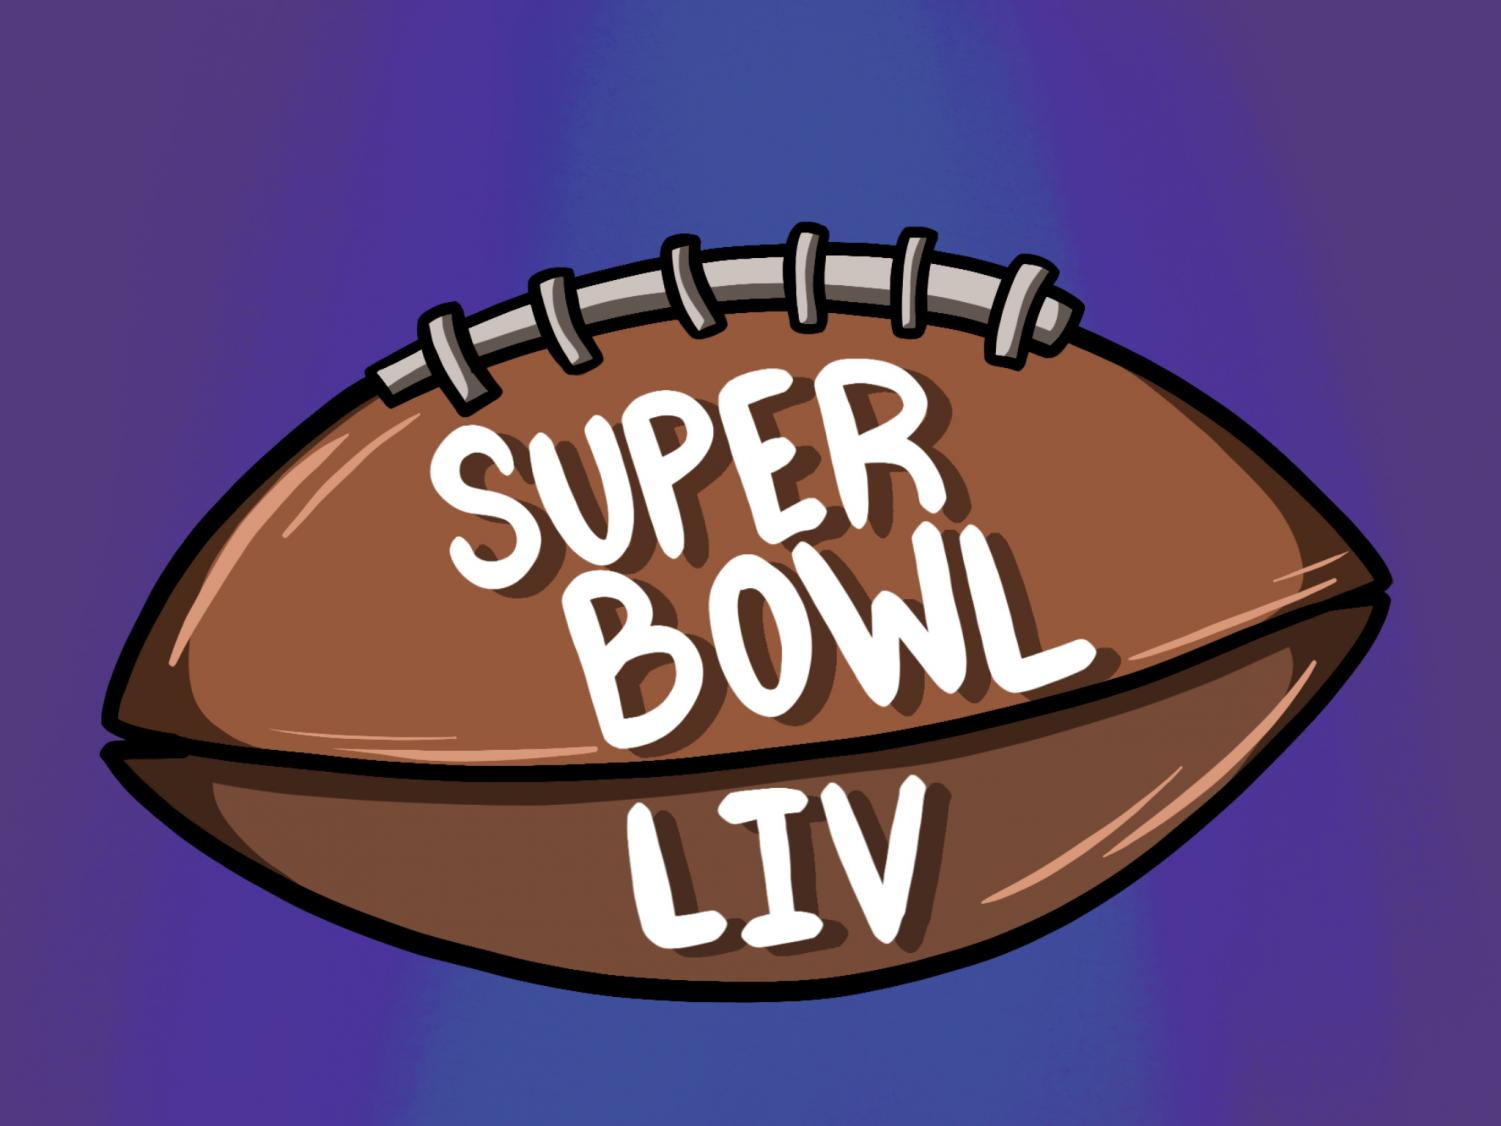 Who's going to Super Bowl LIV?